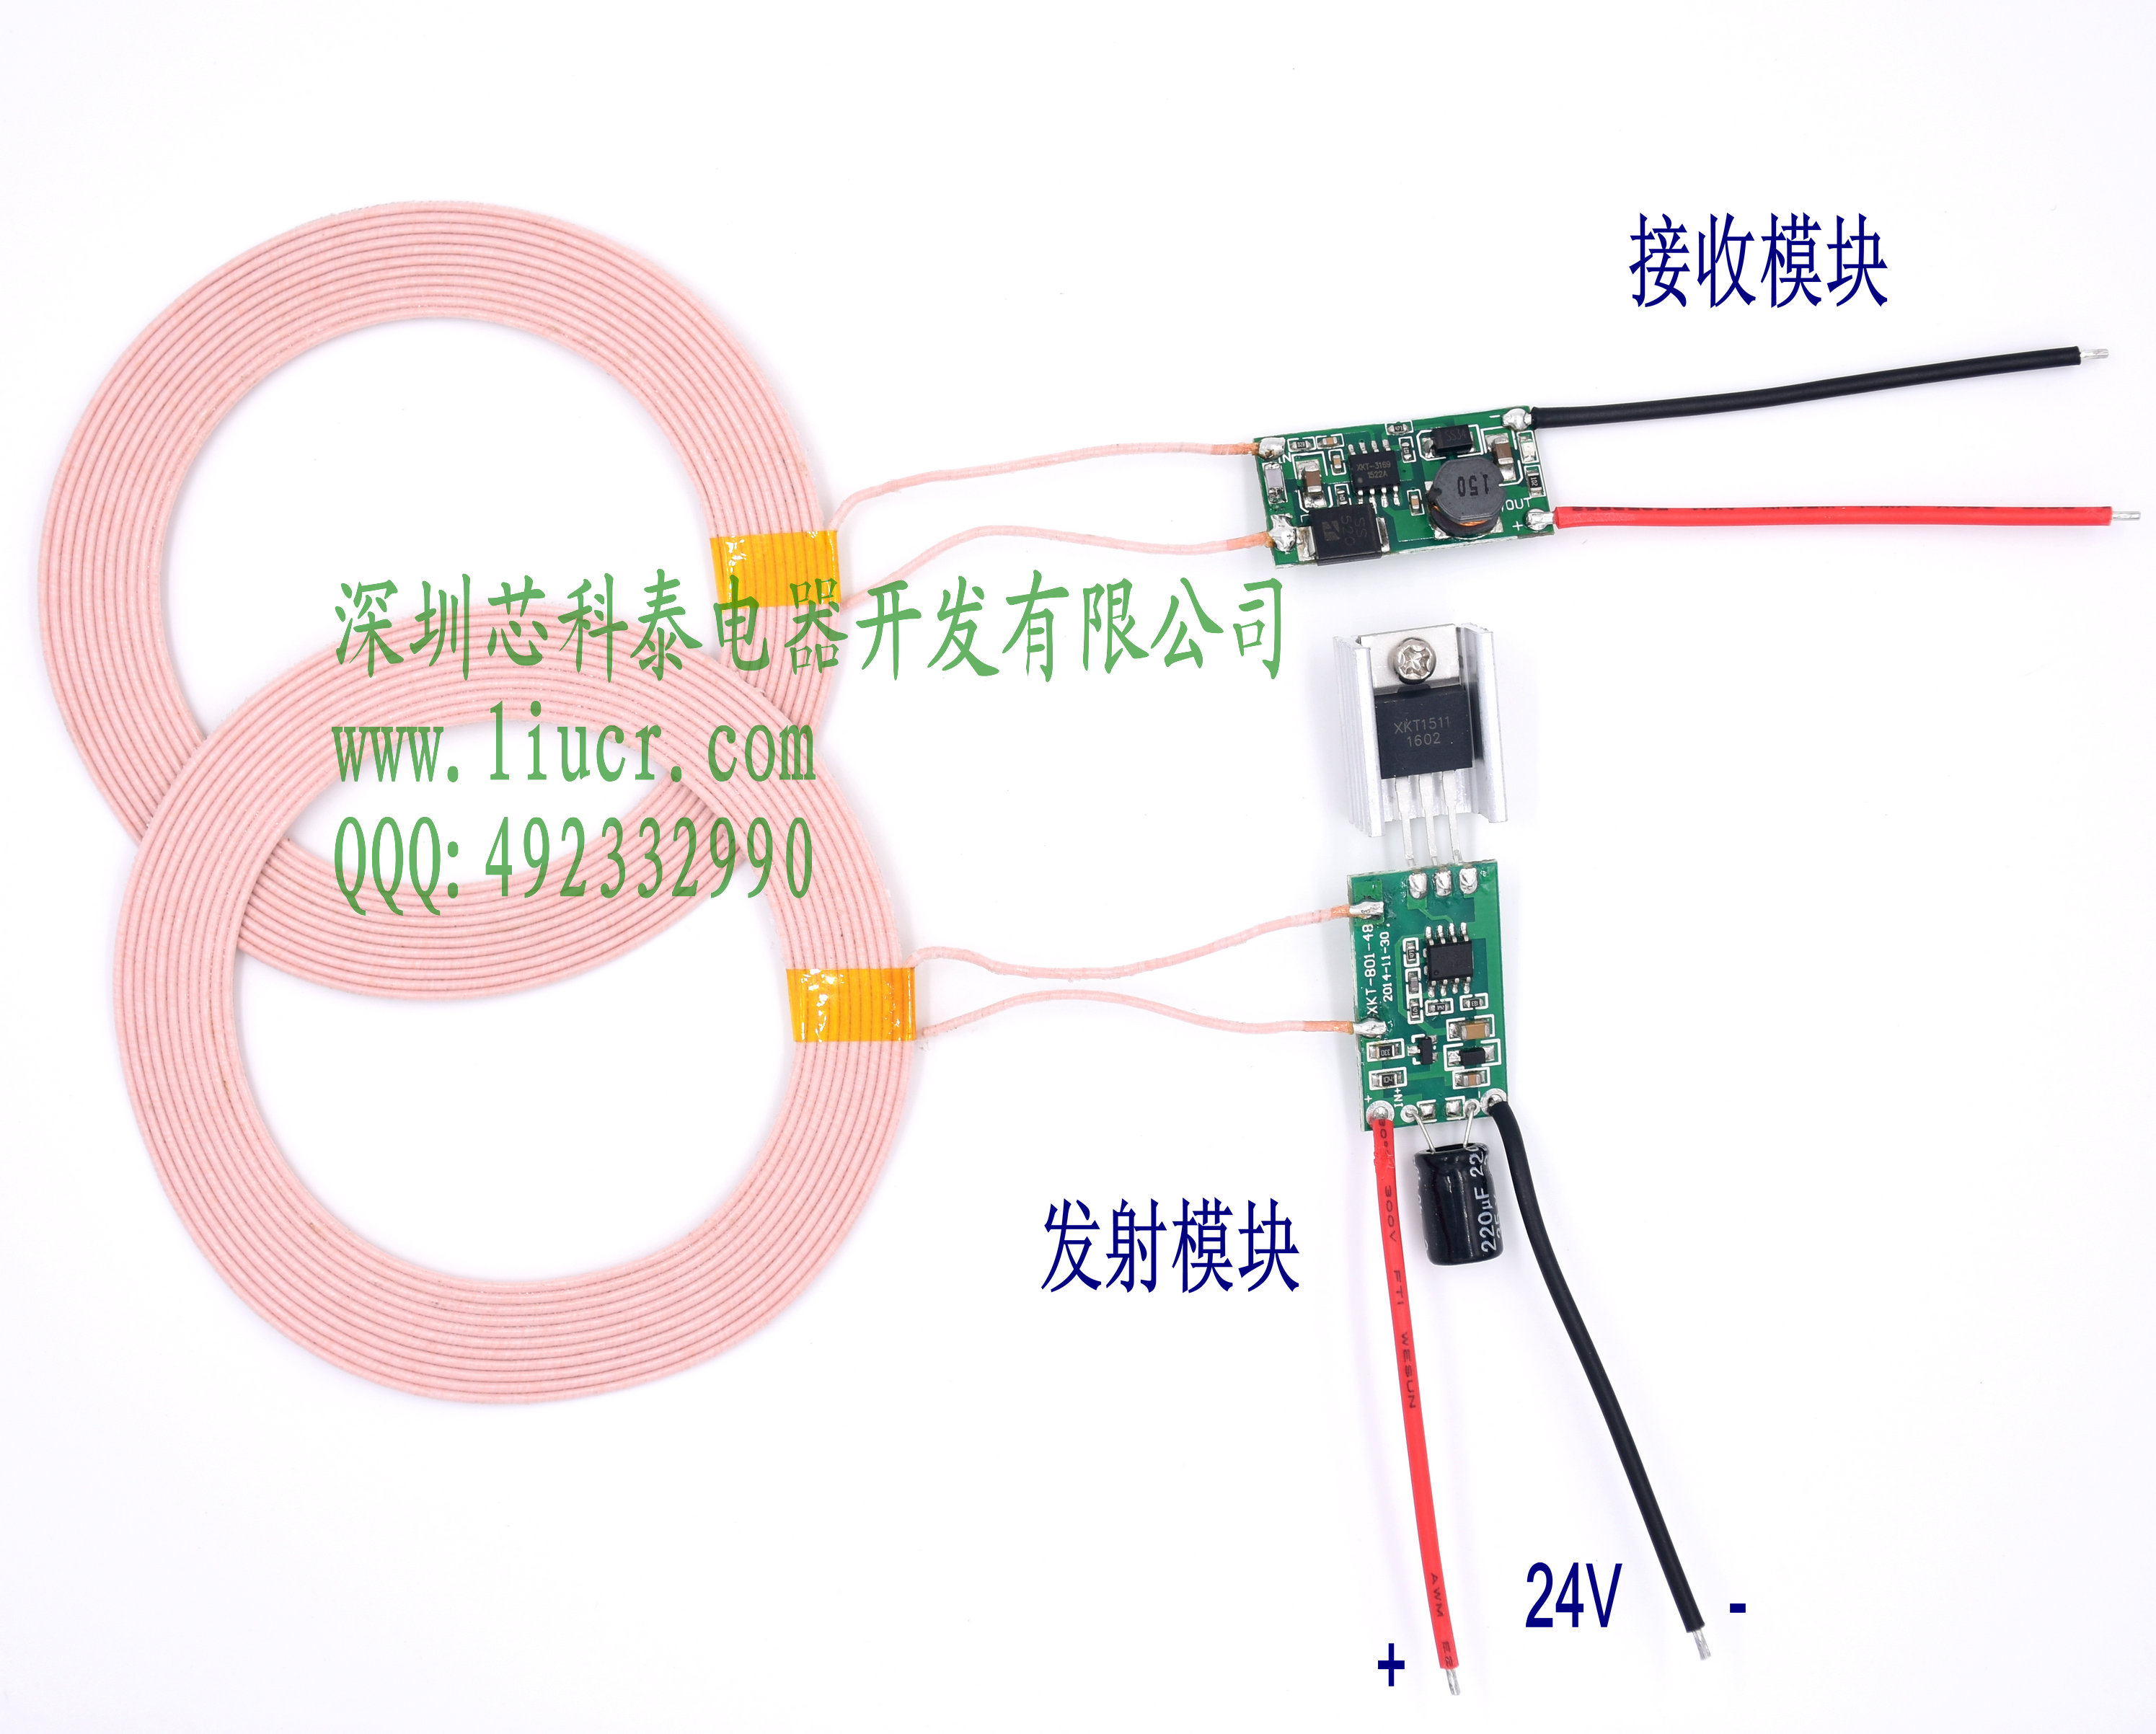 20mm remote receiving output 5V2A high  wireless  supply module wireless charging module module20mm remote receiving output 5V2A high  wireless  supply module wireless charging module module